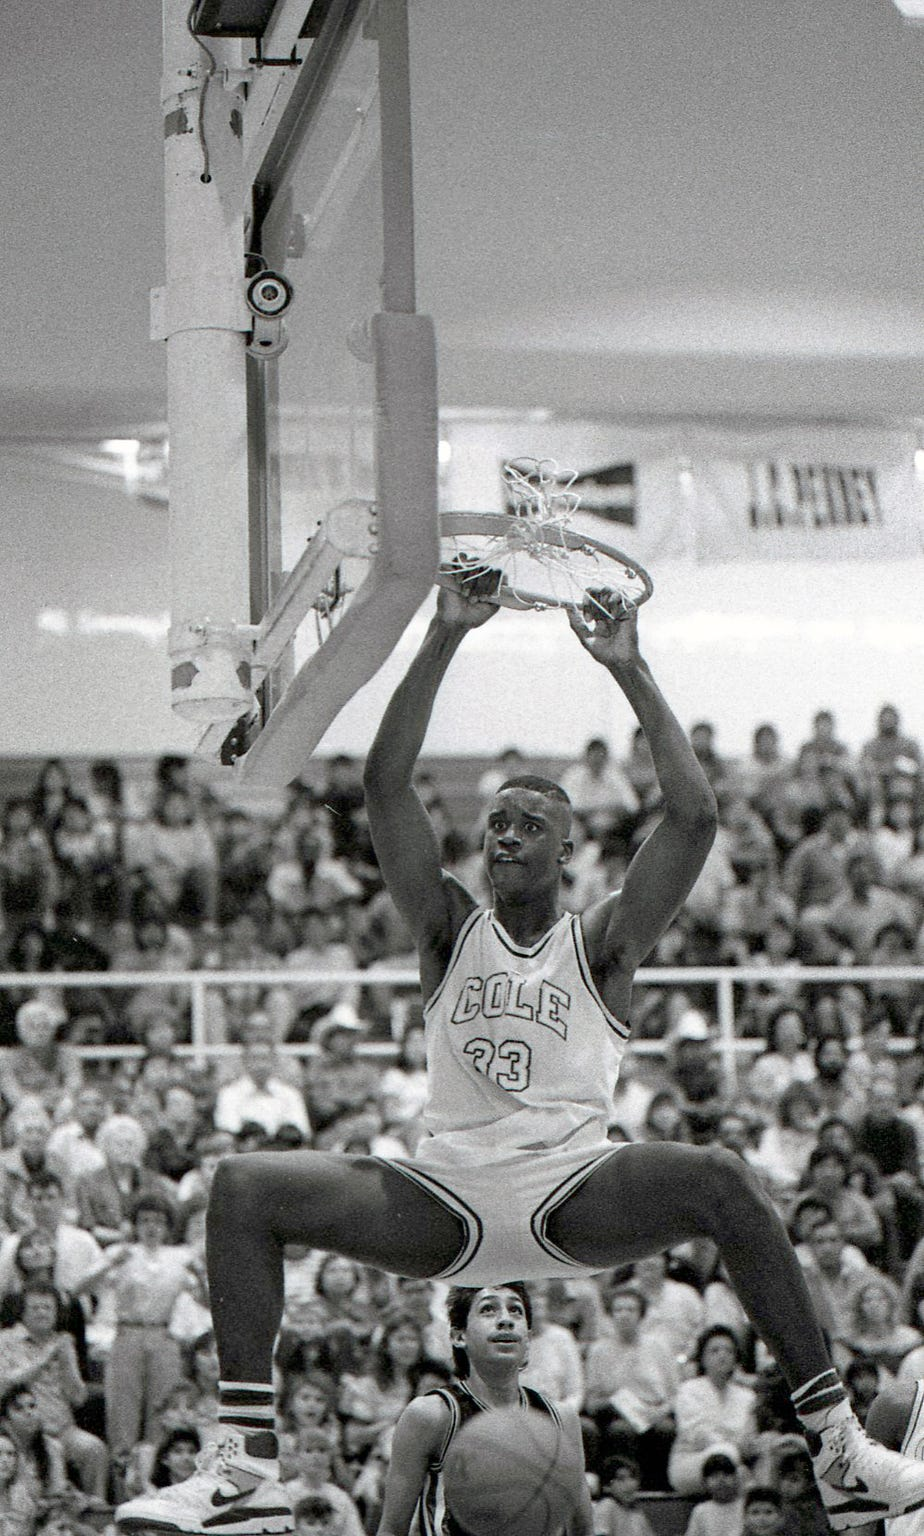 West Oso's Julio Gonzalez could only look up to San Antonio Cole's Shaquille O'Neal (33) during the Region IV-3A tournament on March 3, 1989 at Steinke Event Center at Texas A&I University in Kingsville. San Antonio Cole won 80-53.